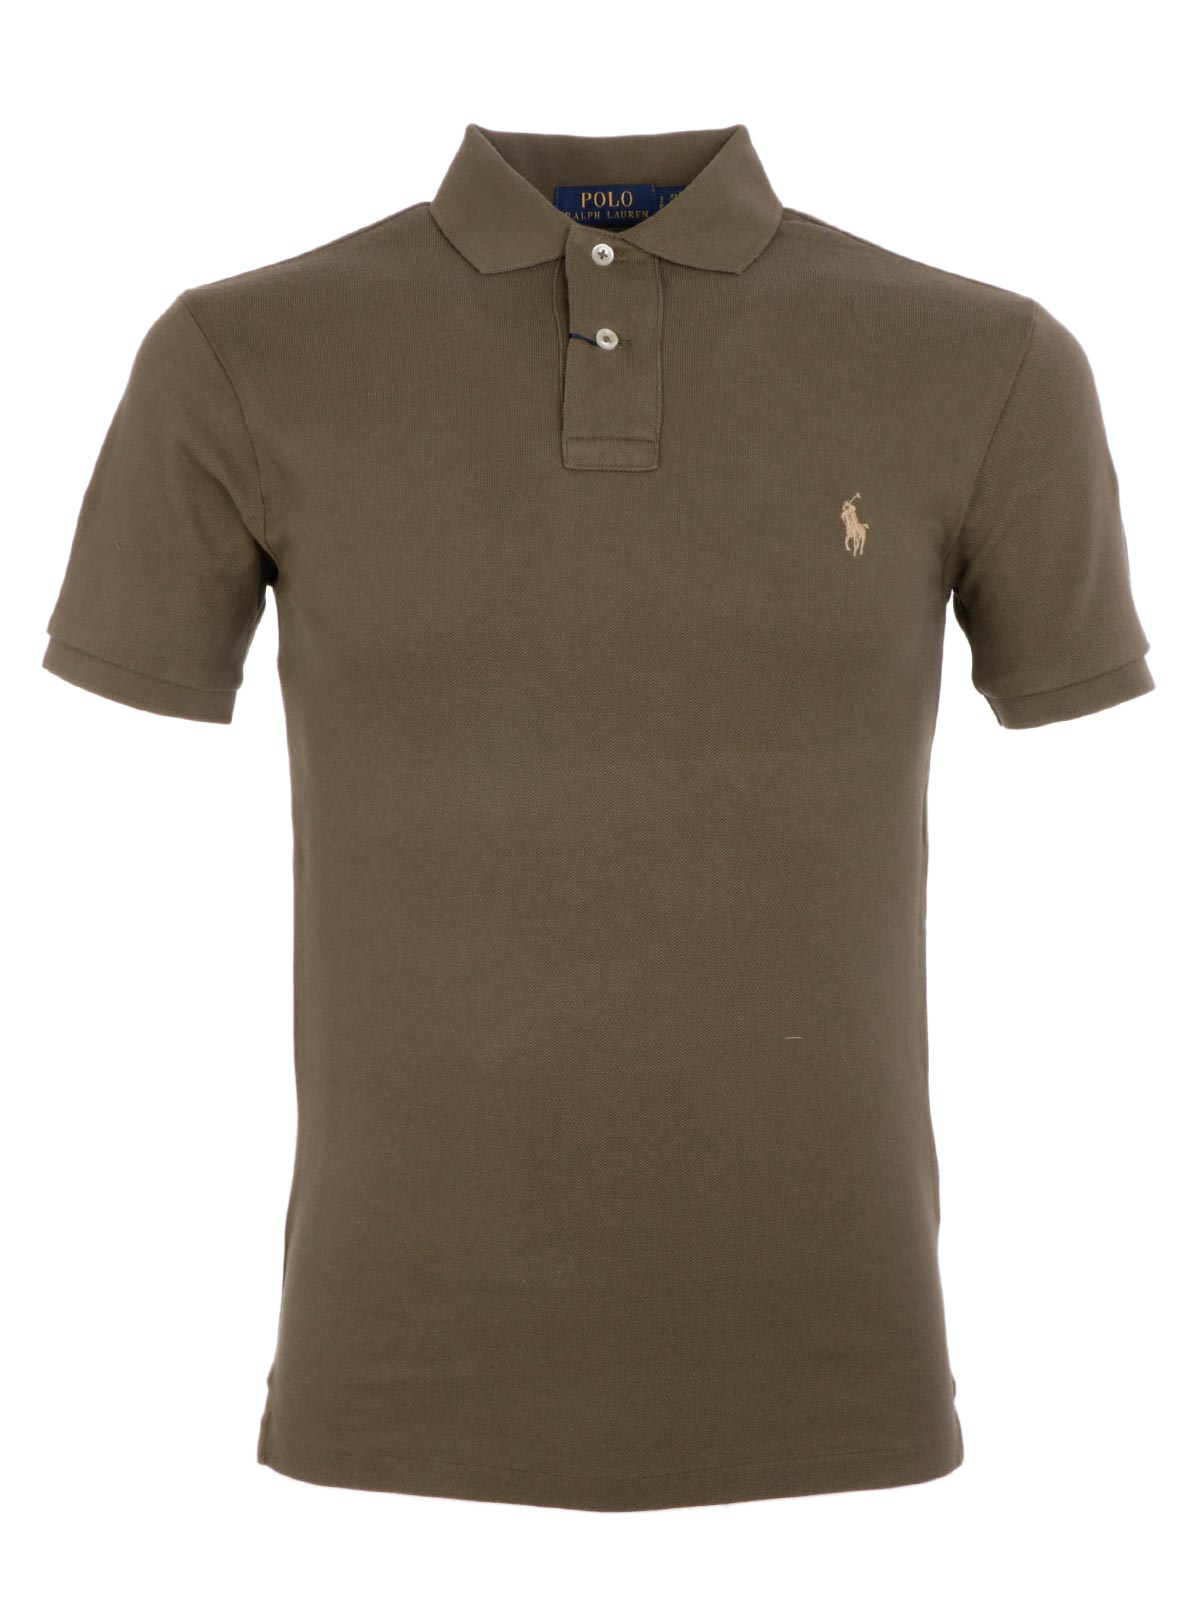 e7c55943e418a POLO RALPH LAUREN Men s Slim Fit Polo Shirt Olive Green ...